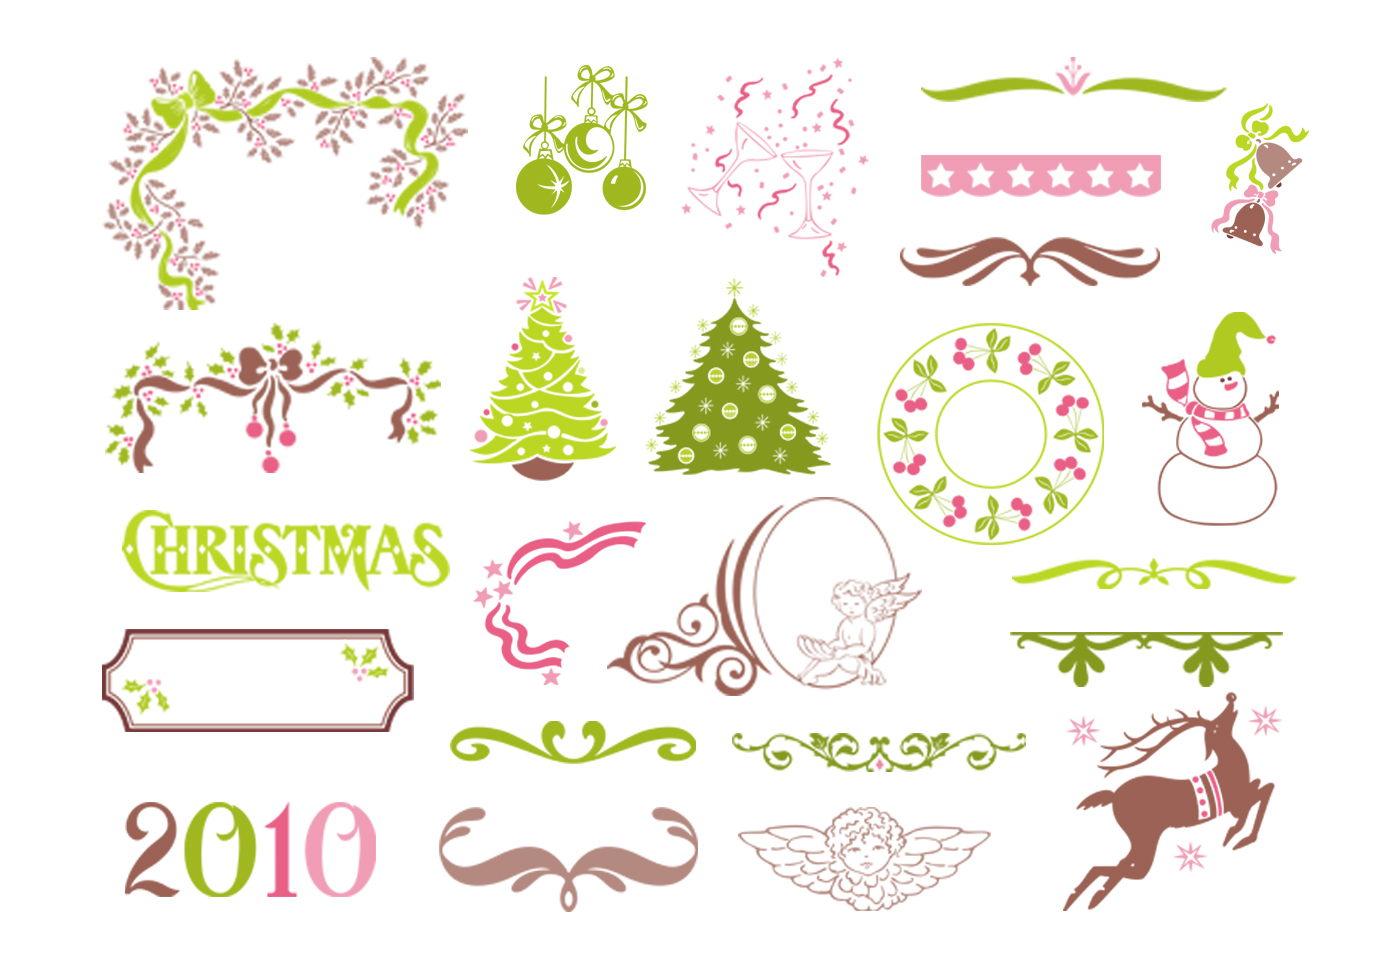 Christmas-vector-elements-pack